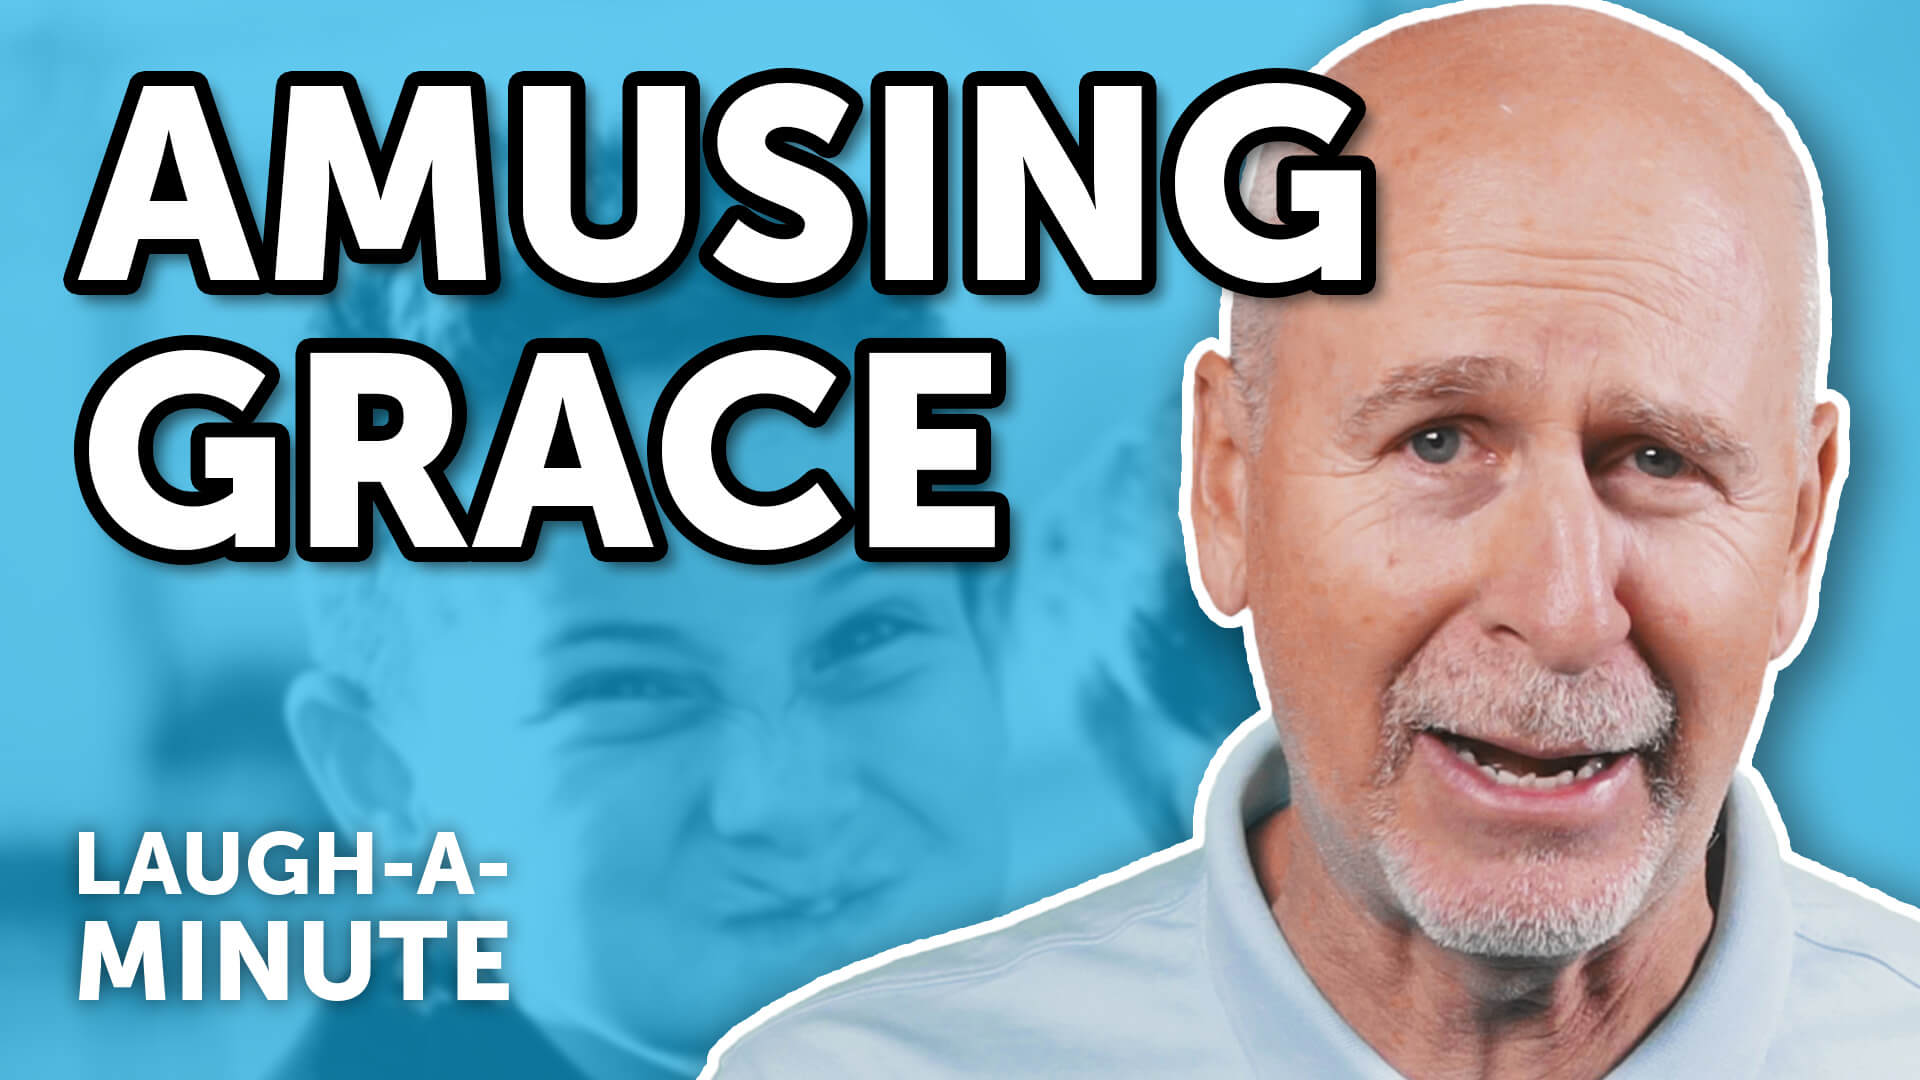 Amusing Grace - Laugh-A-Minute with Phil Callaway | Laugh Again TV